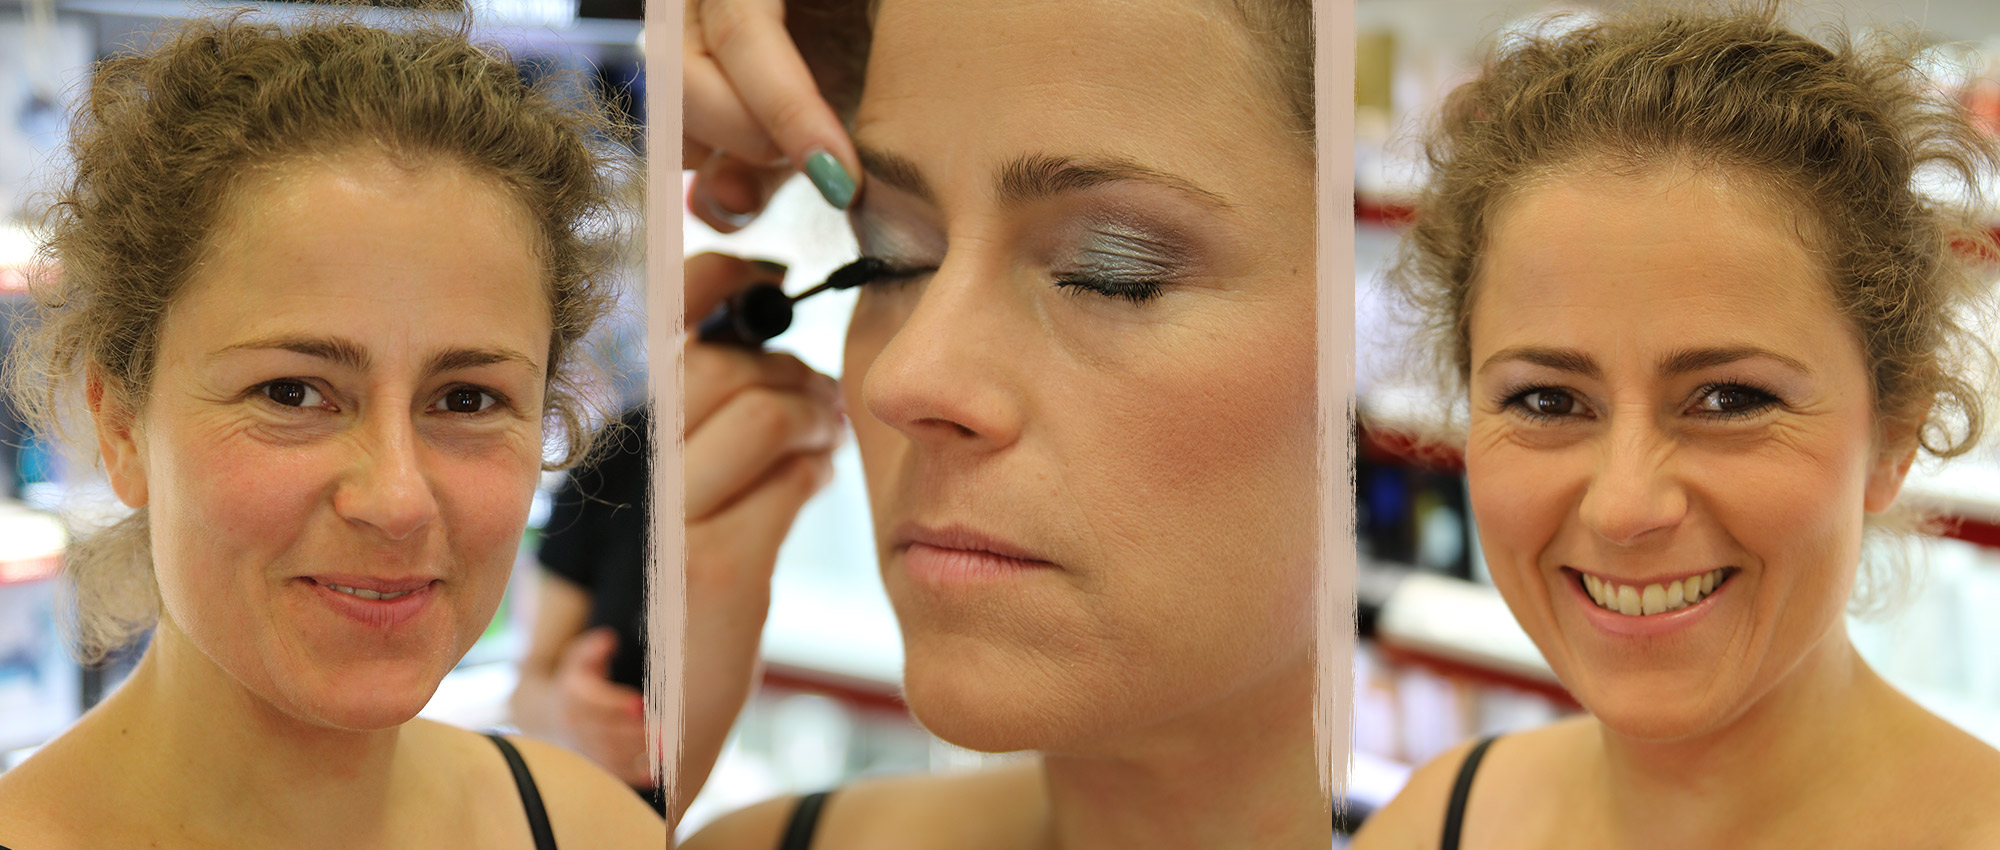 Professionelles Make-up und Haar-Styling